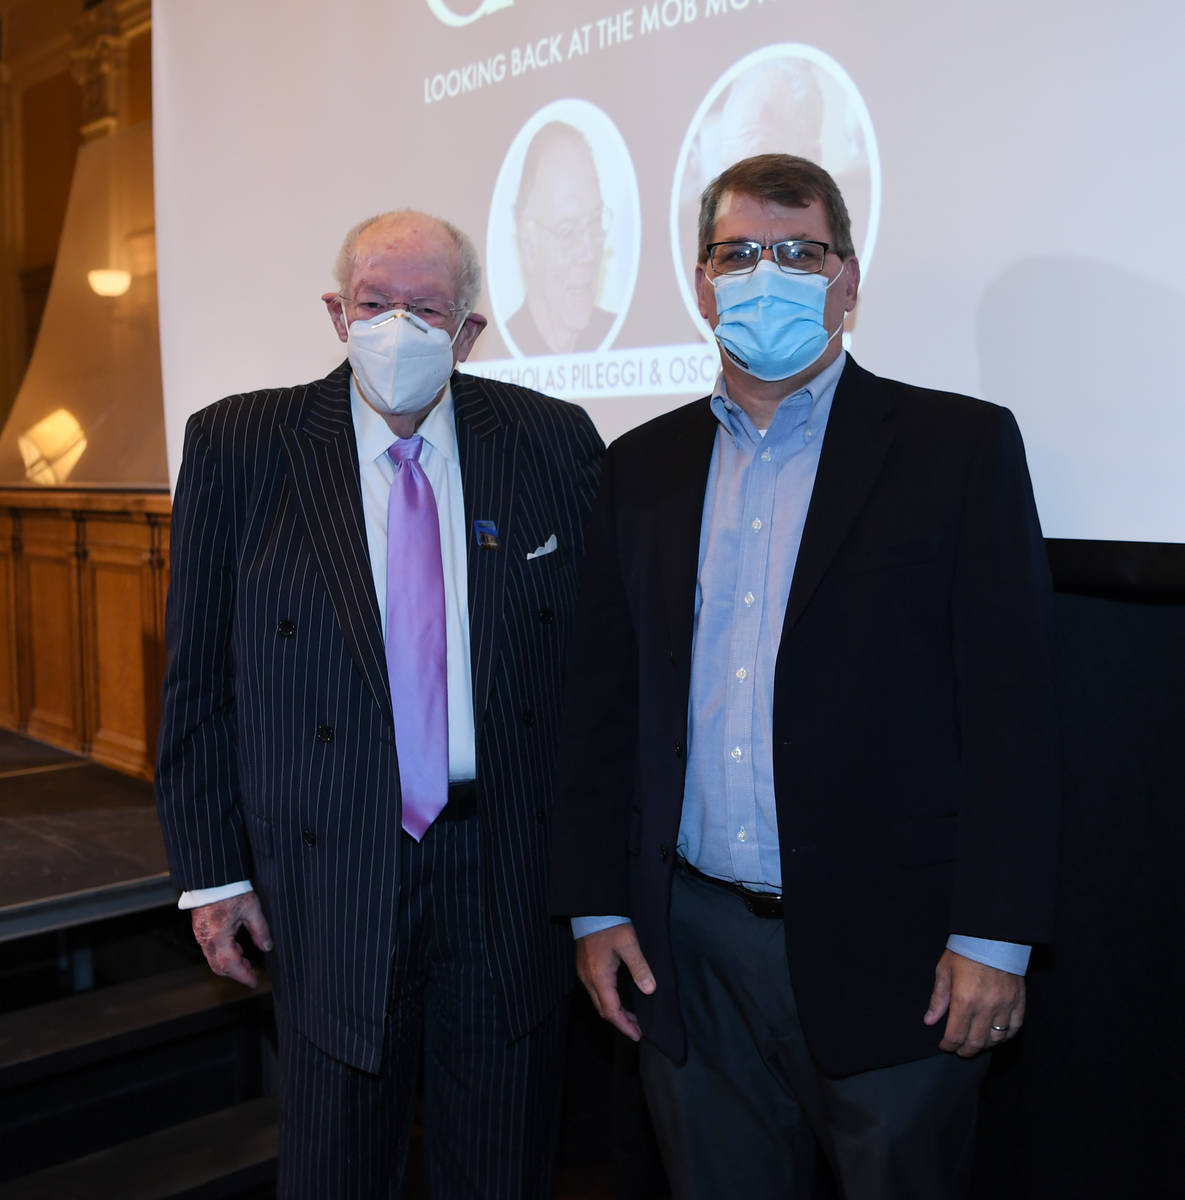 The Mob Museum Vice President of Exhibits and Programs Geoff Schumacher and ex-Las Vegas Mayor ...